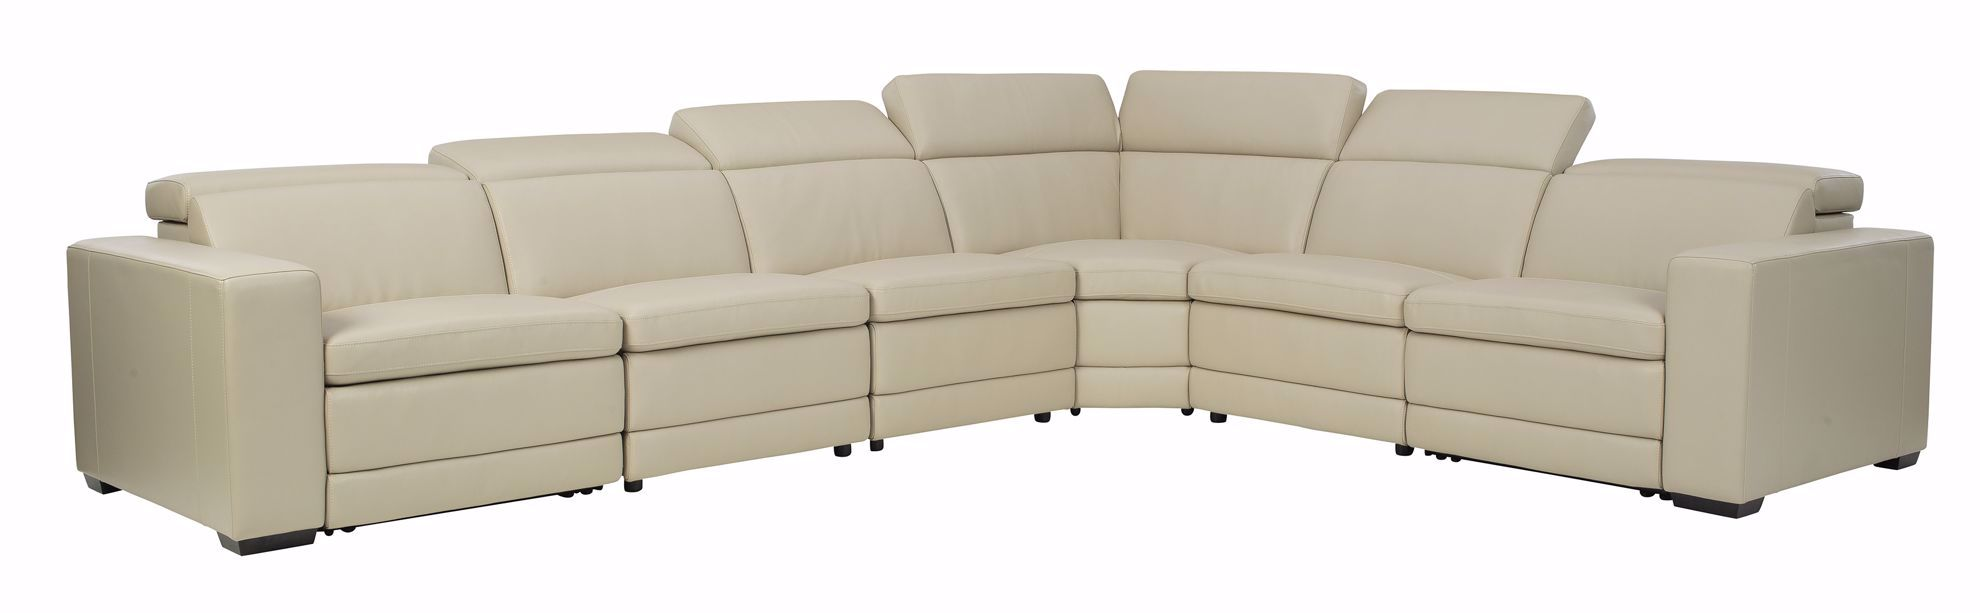 Picture of Texline Sand 6-Piece Sectional